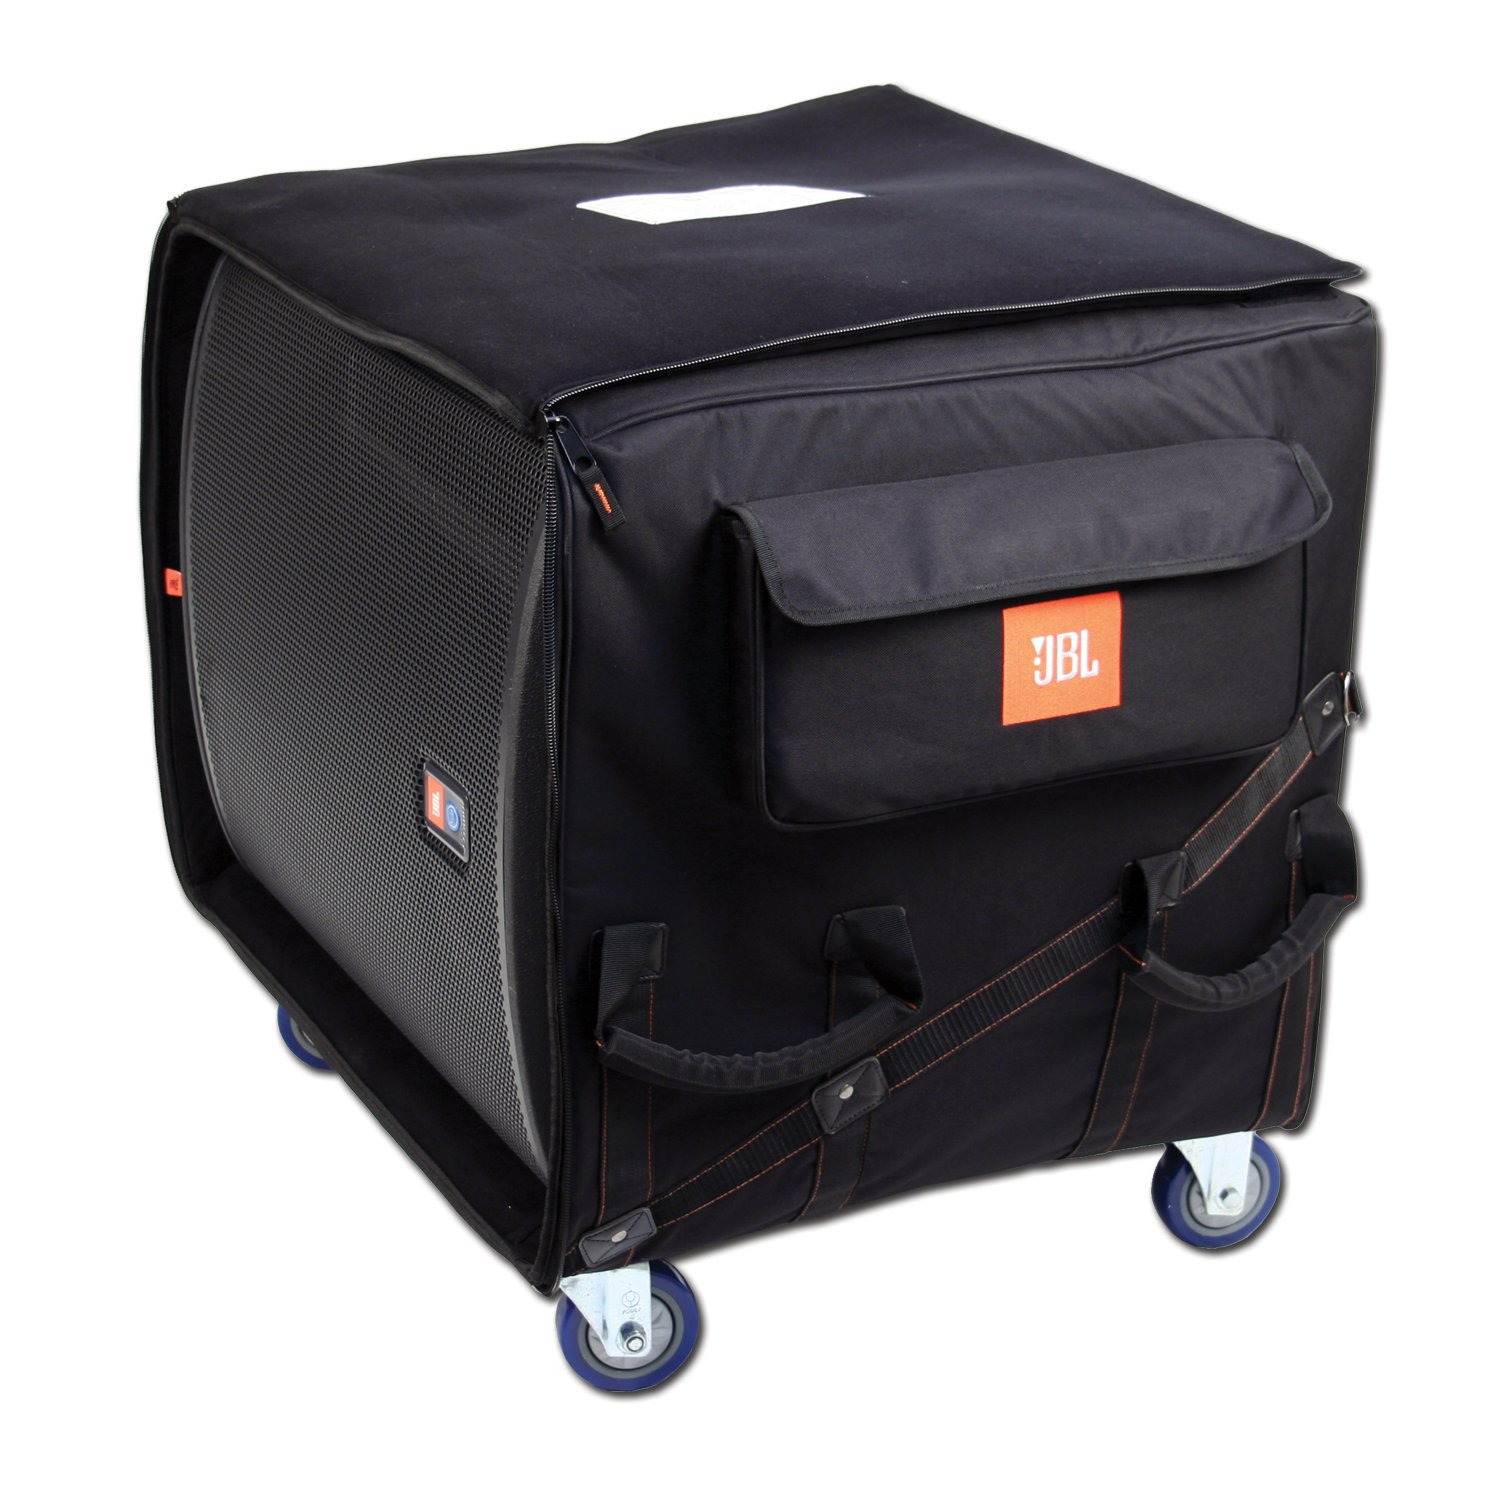 JBL Rolling Sub Transporter Bag for JBL 18-Inch Sub Speaker - Black (JBL-SUB-18T)